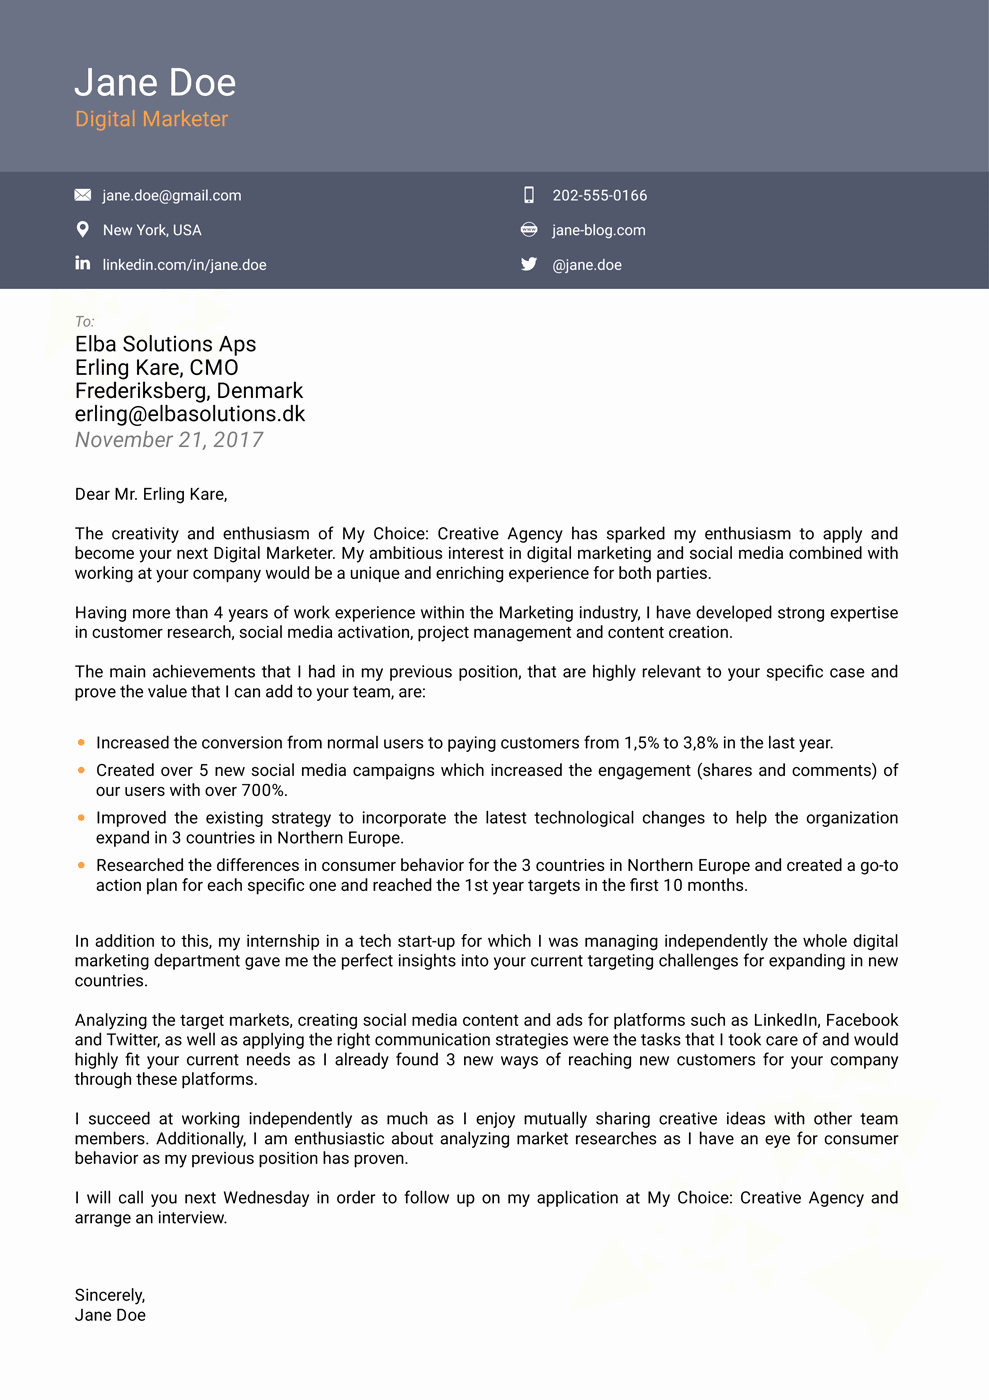 Images Of Resume Cover Letters New 2018 Professional Cover Letter Templates Download now